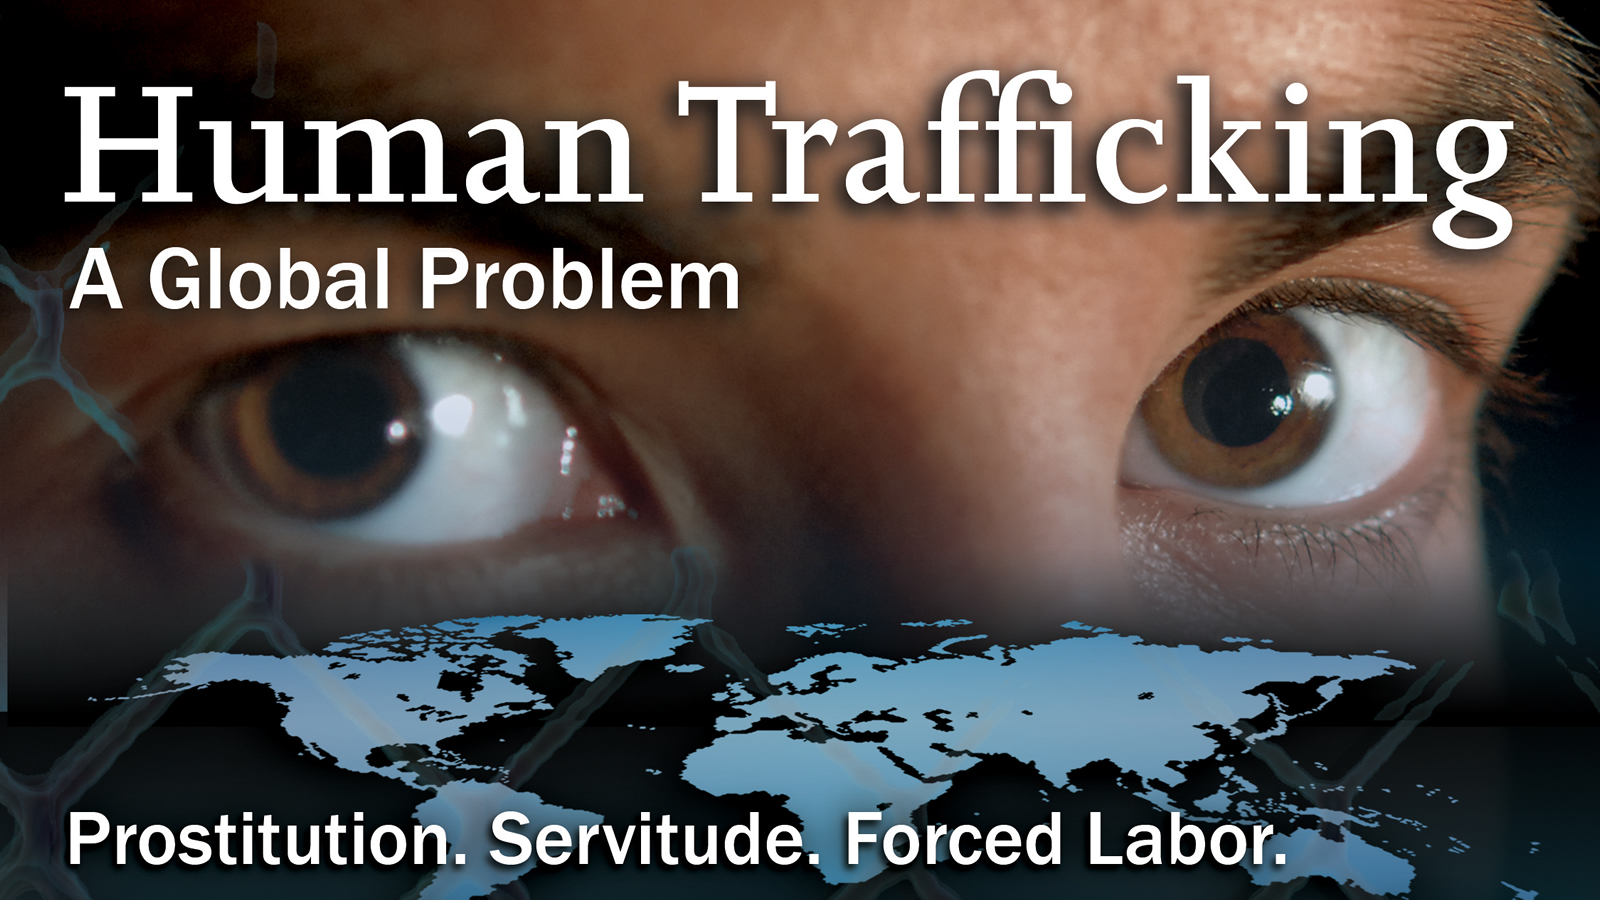 human trafficking is a global issue